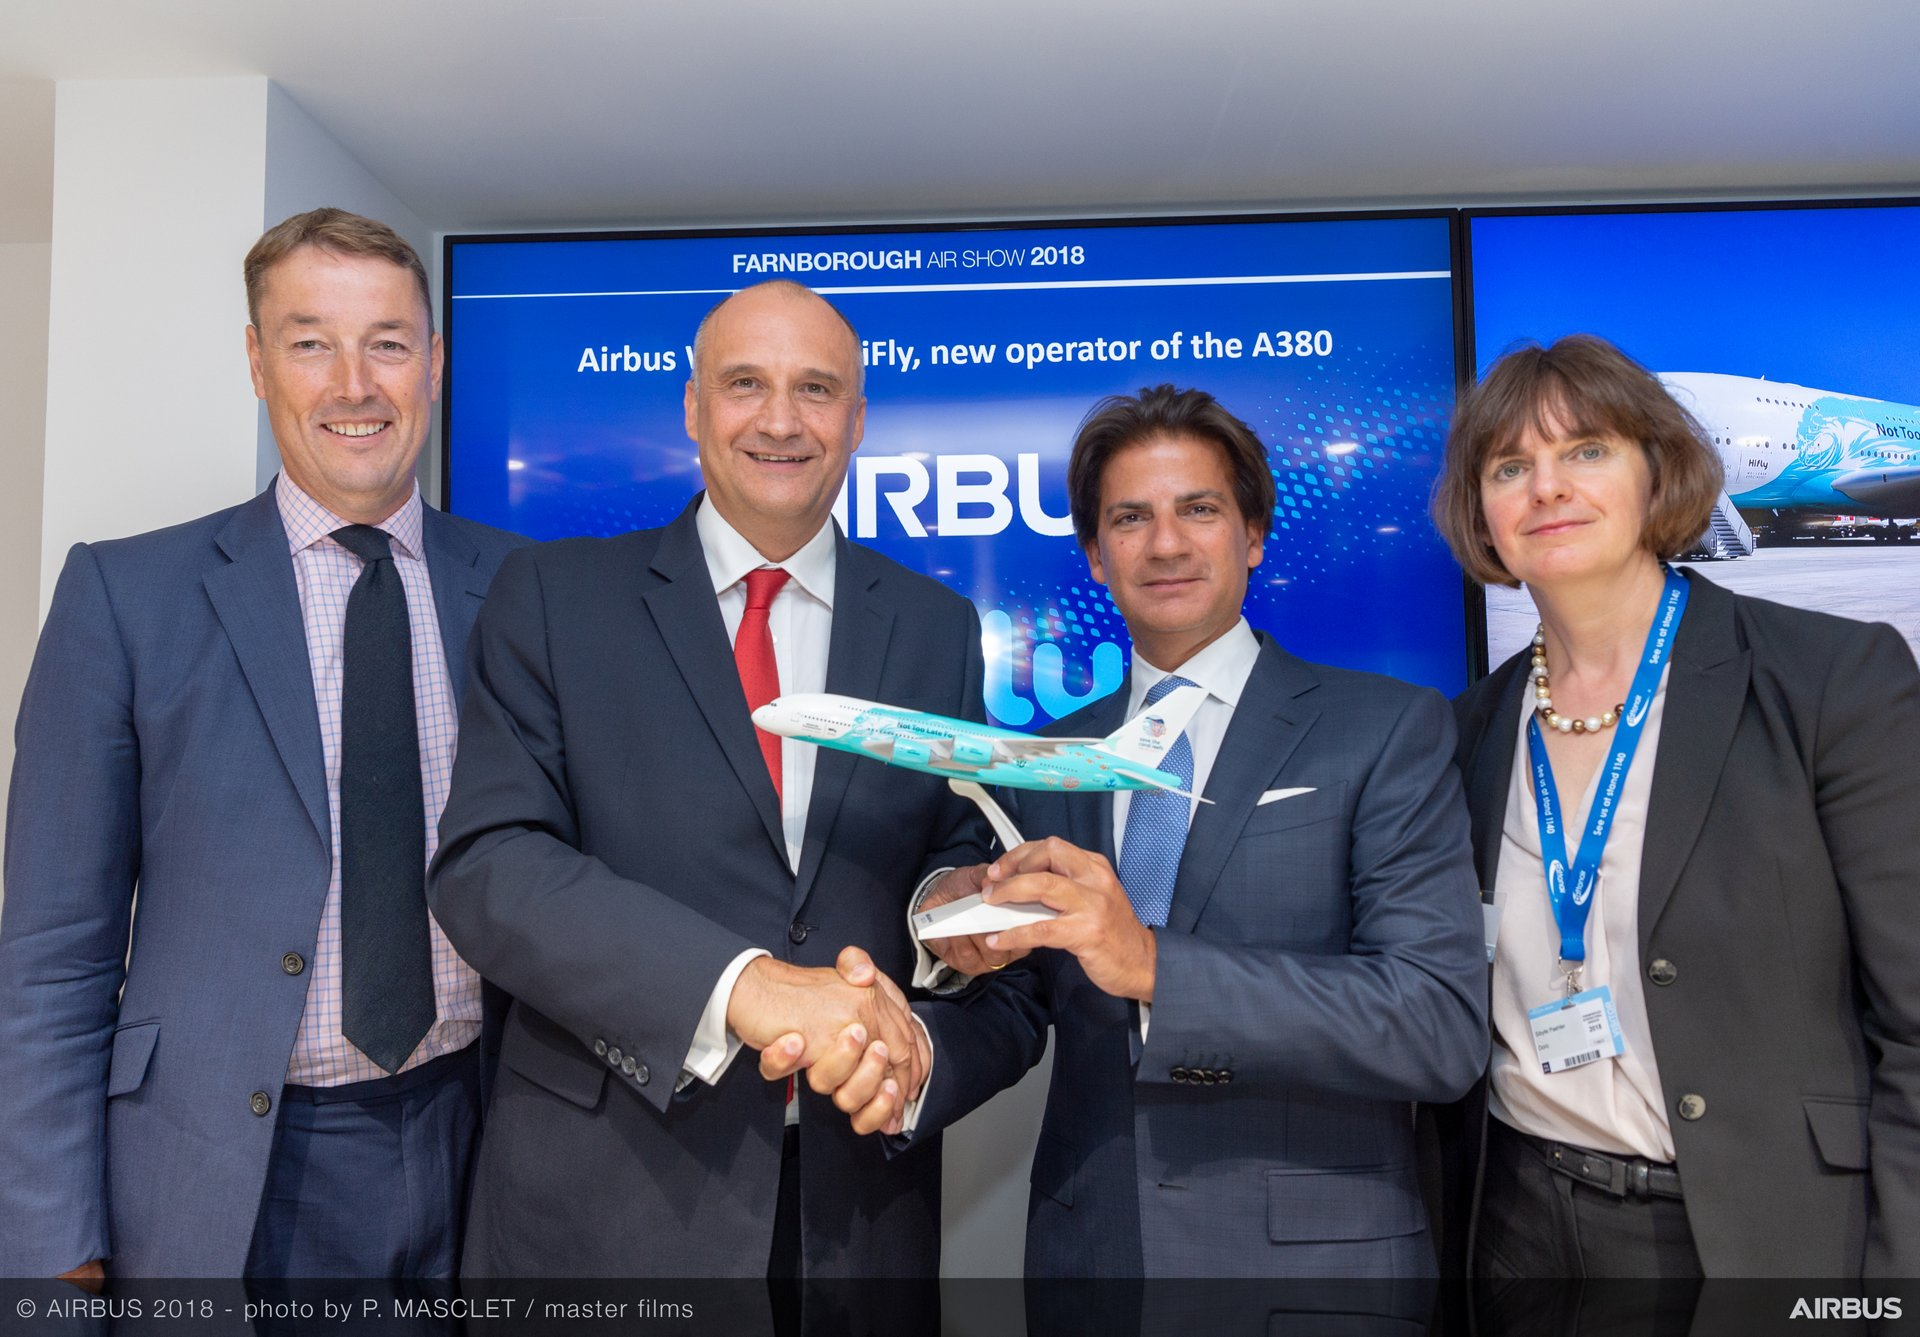 "Portugal-based Hi Fly made history in becoming the first company to receive a second-hand A380, which it will offer to operators on 'wet lease;"" marking the announcement at the 2018 Farnborough Airshow are (from left to right): Rolls-Royce SVP-Customer Business Simon Goodson; Airbus Chief Commercial Officer Eric Schulz; Hi Fly President and CEO Paulo Mirpuri and Sibylle Pähler, Managing Director at Doric GmbH"